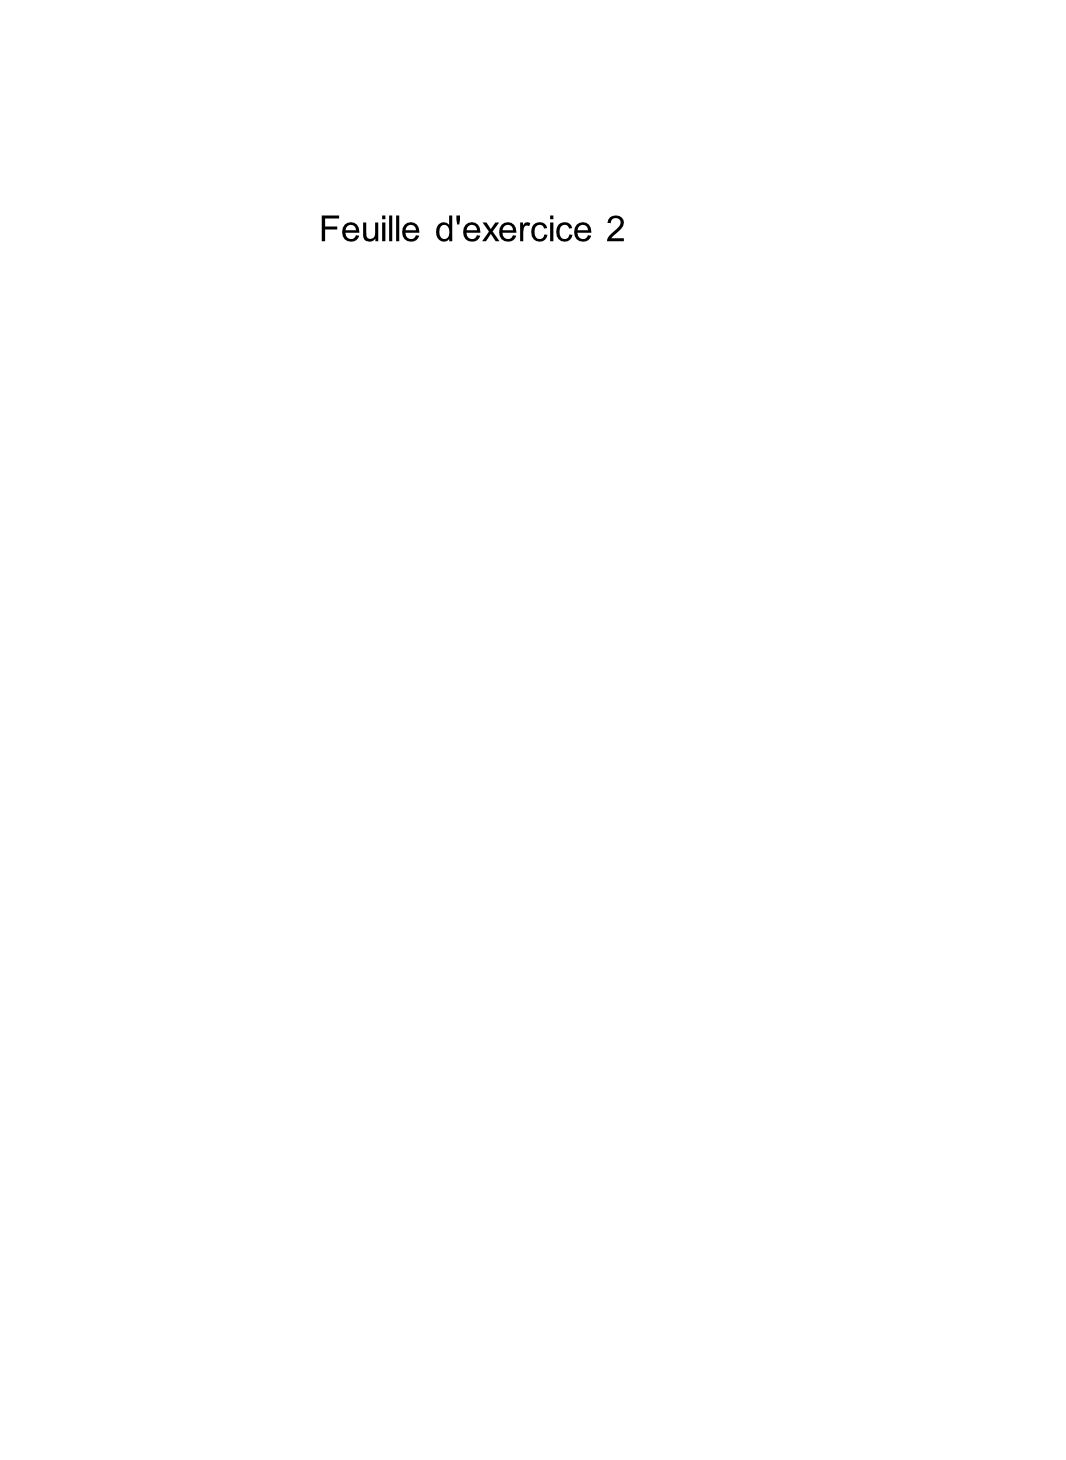 Feuille d exercice 2